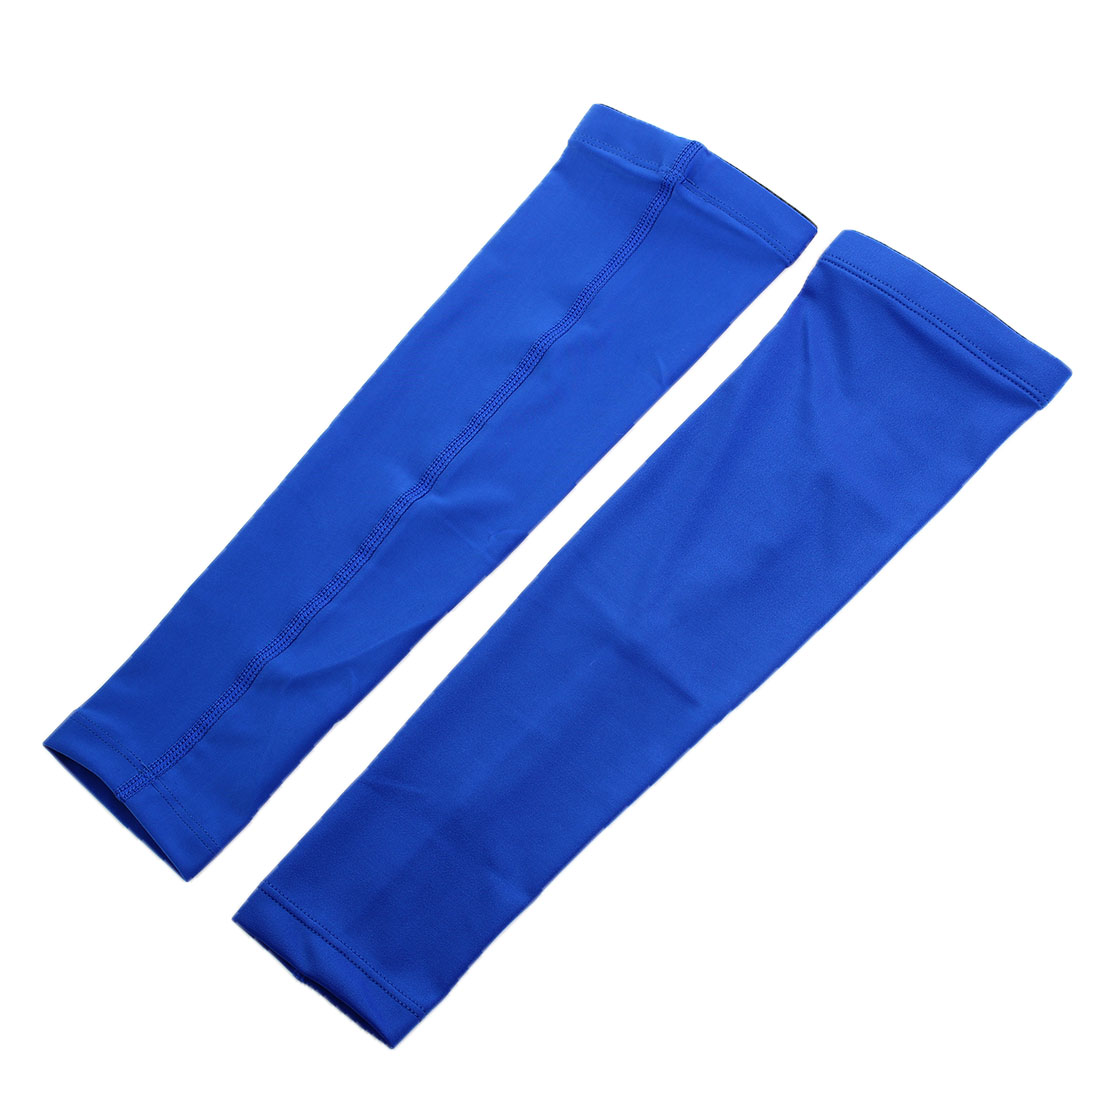 Sports Basketball Cycling Sun Protection Arm Sleeves Band Size M Pair